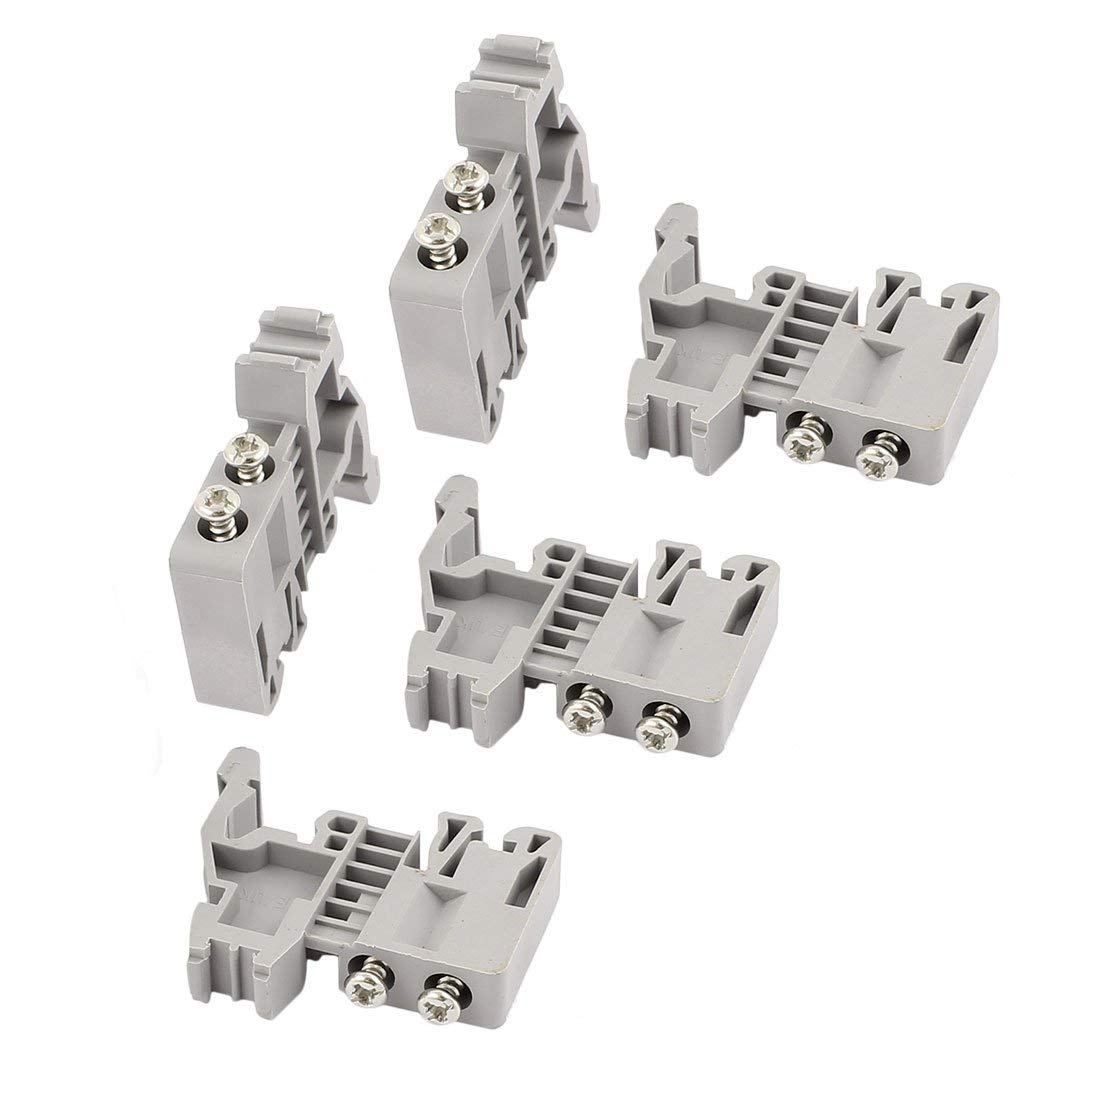 Aexit 5 Pcs E-UK 35mm DIN Rail End Screw Clamp Terminal Fixed Block Gray